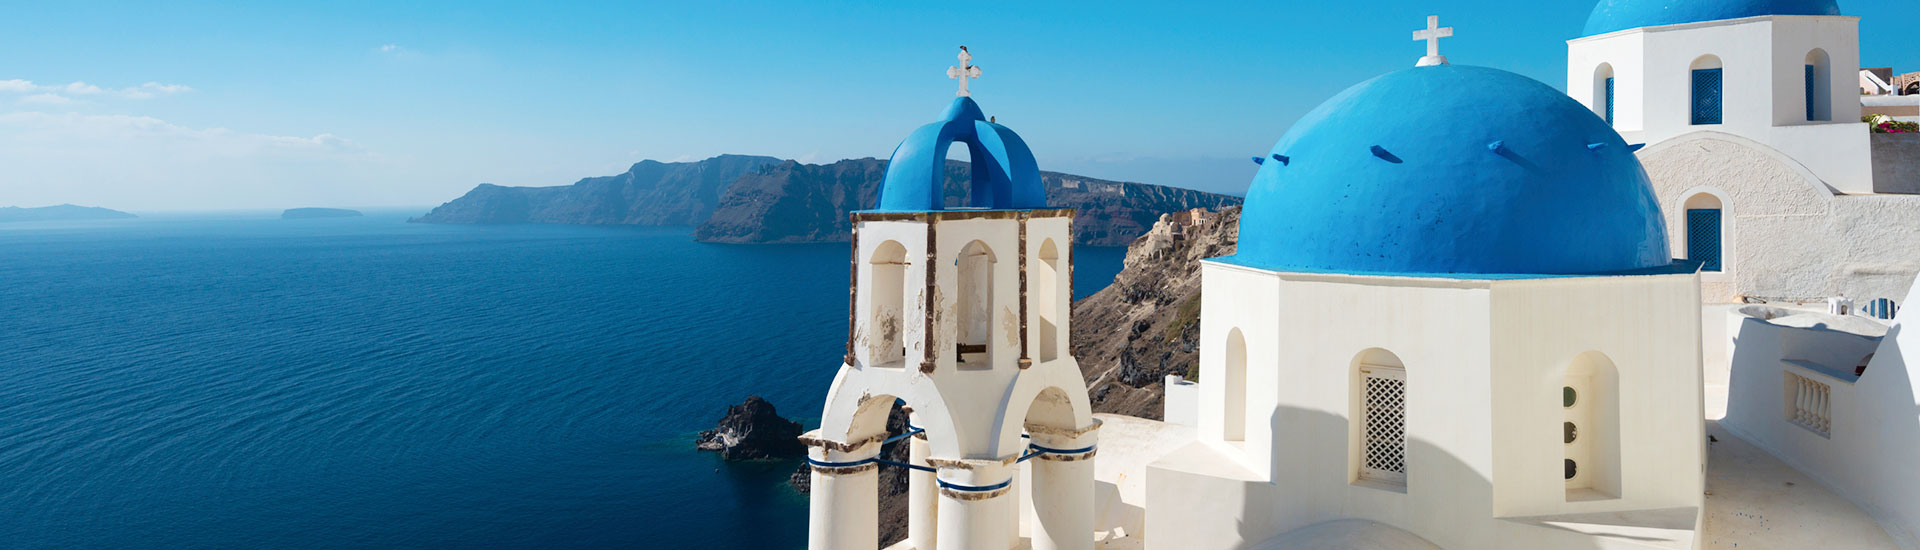 Turn The Pages Of History By Visiting Greece